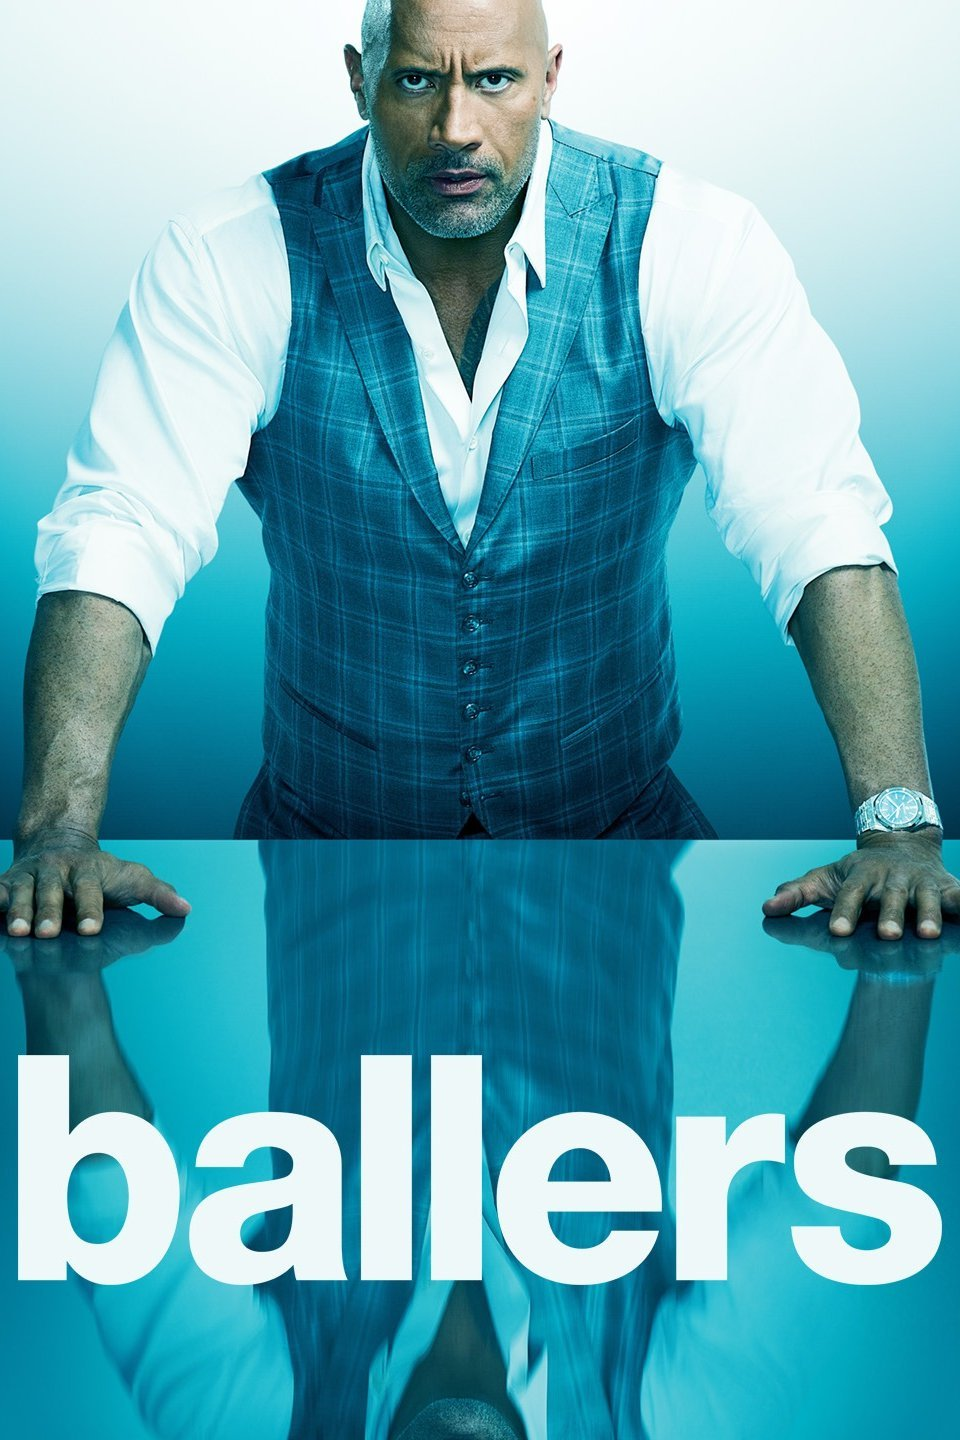 Ballers - Spencer and Joe find a new opportunity to take their business to the next level and Spencer tries to find new ways to elevate SportsX TV. Spencer meets Quincy who he's meant to look out for but could potentially ruin his football career by taking a dangerous risk. This is available on Amazon Prime.